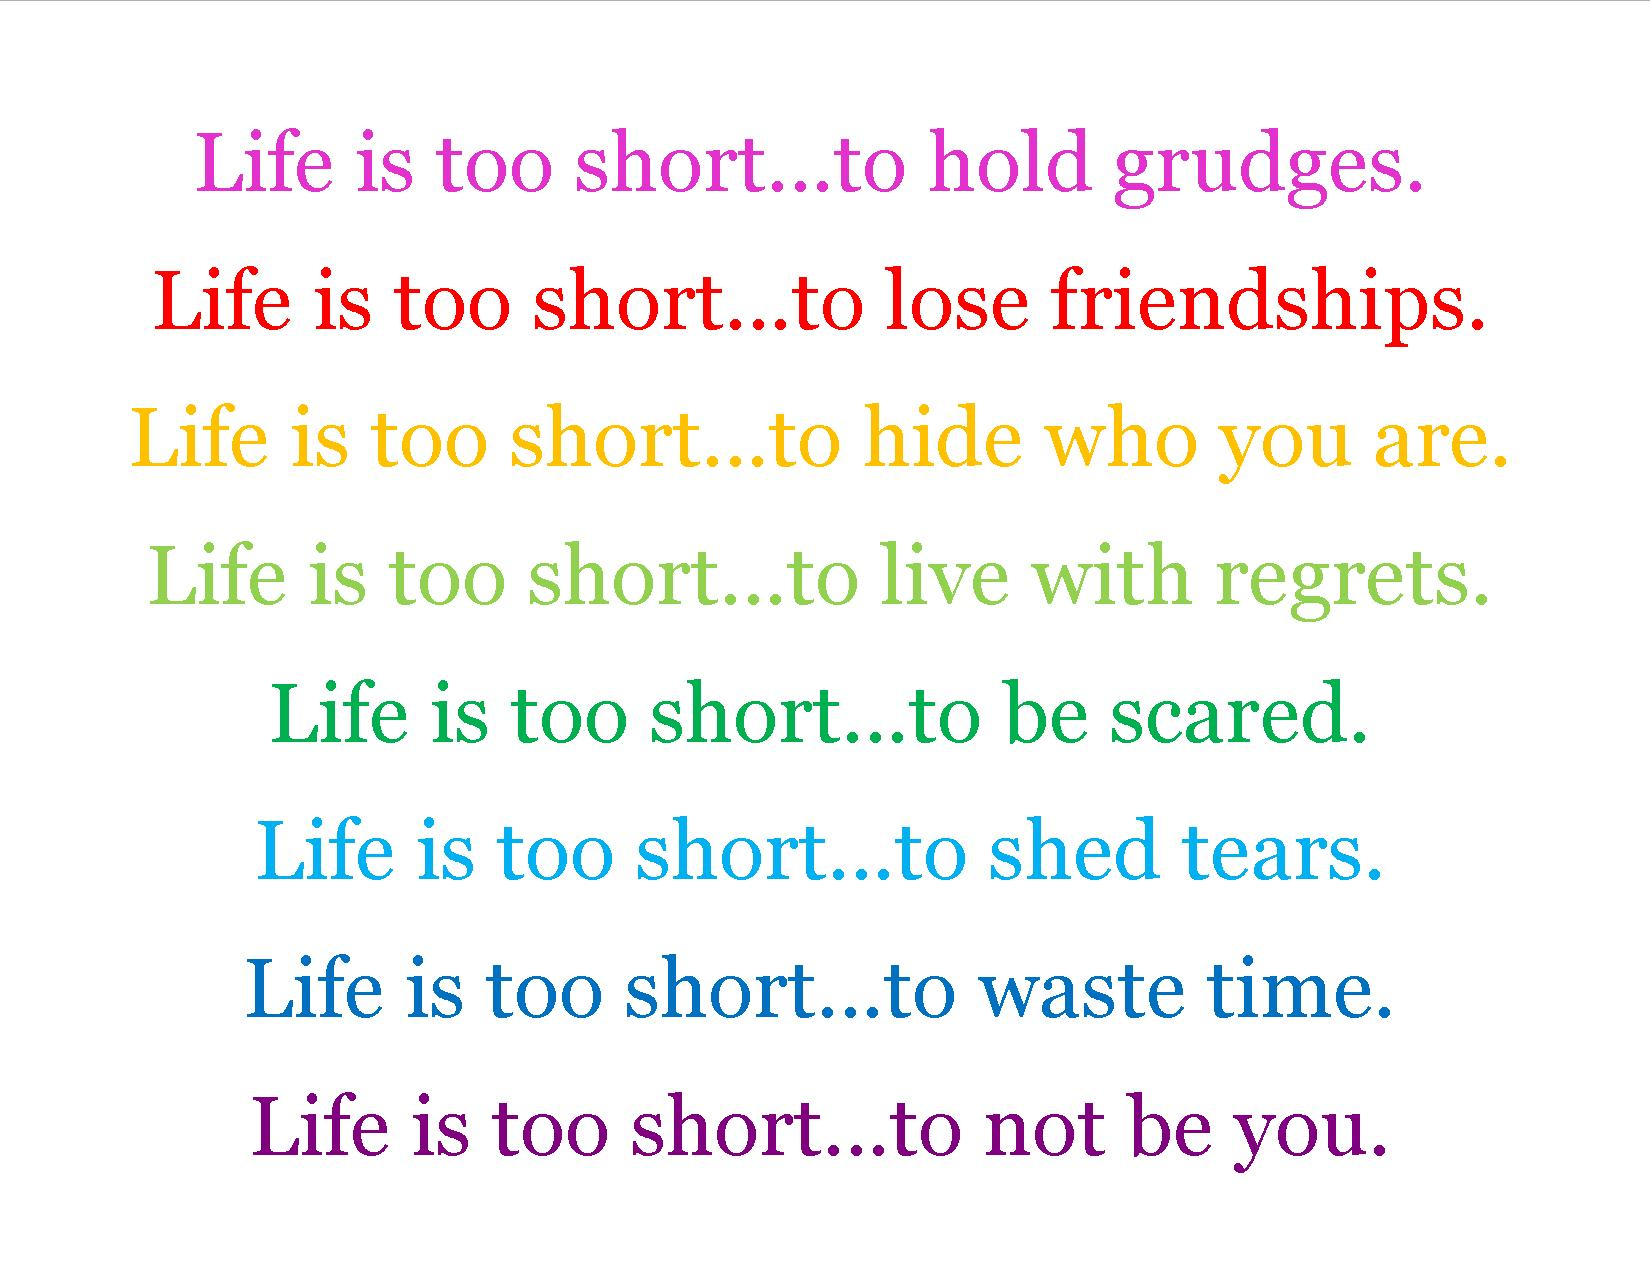 Quotes quotes about life too short